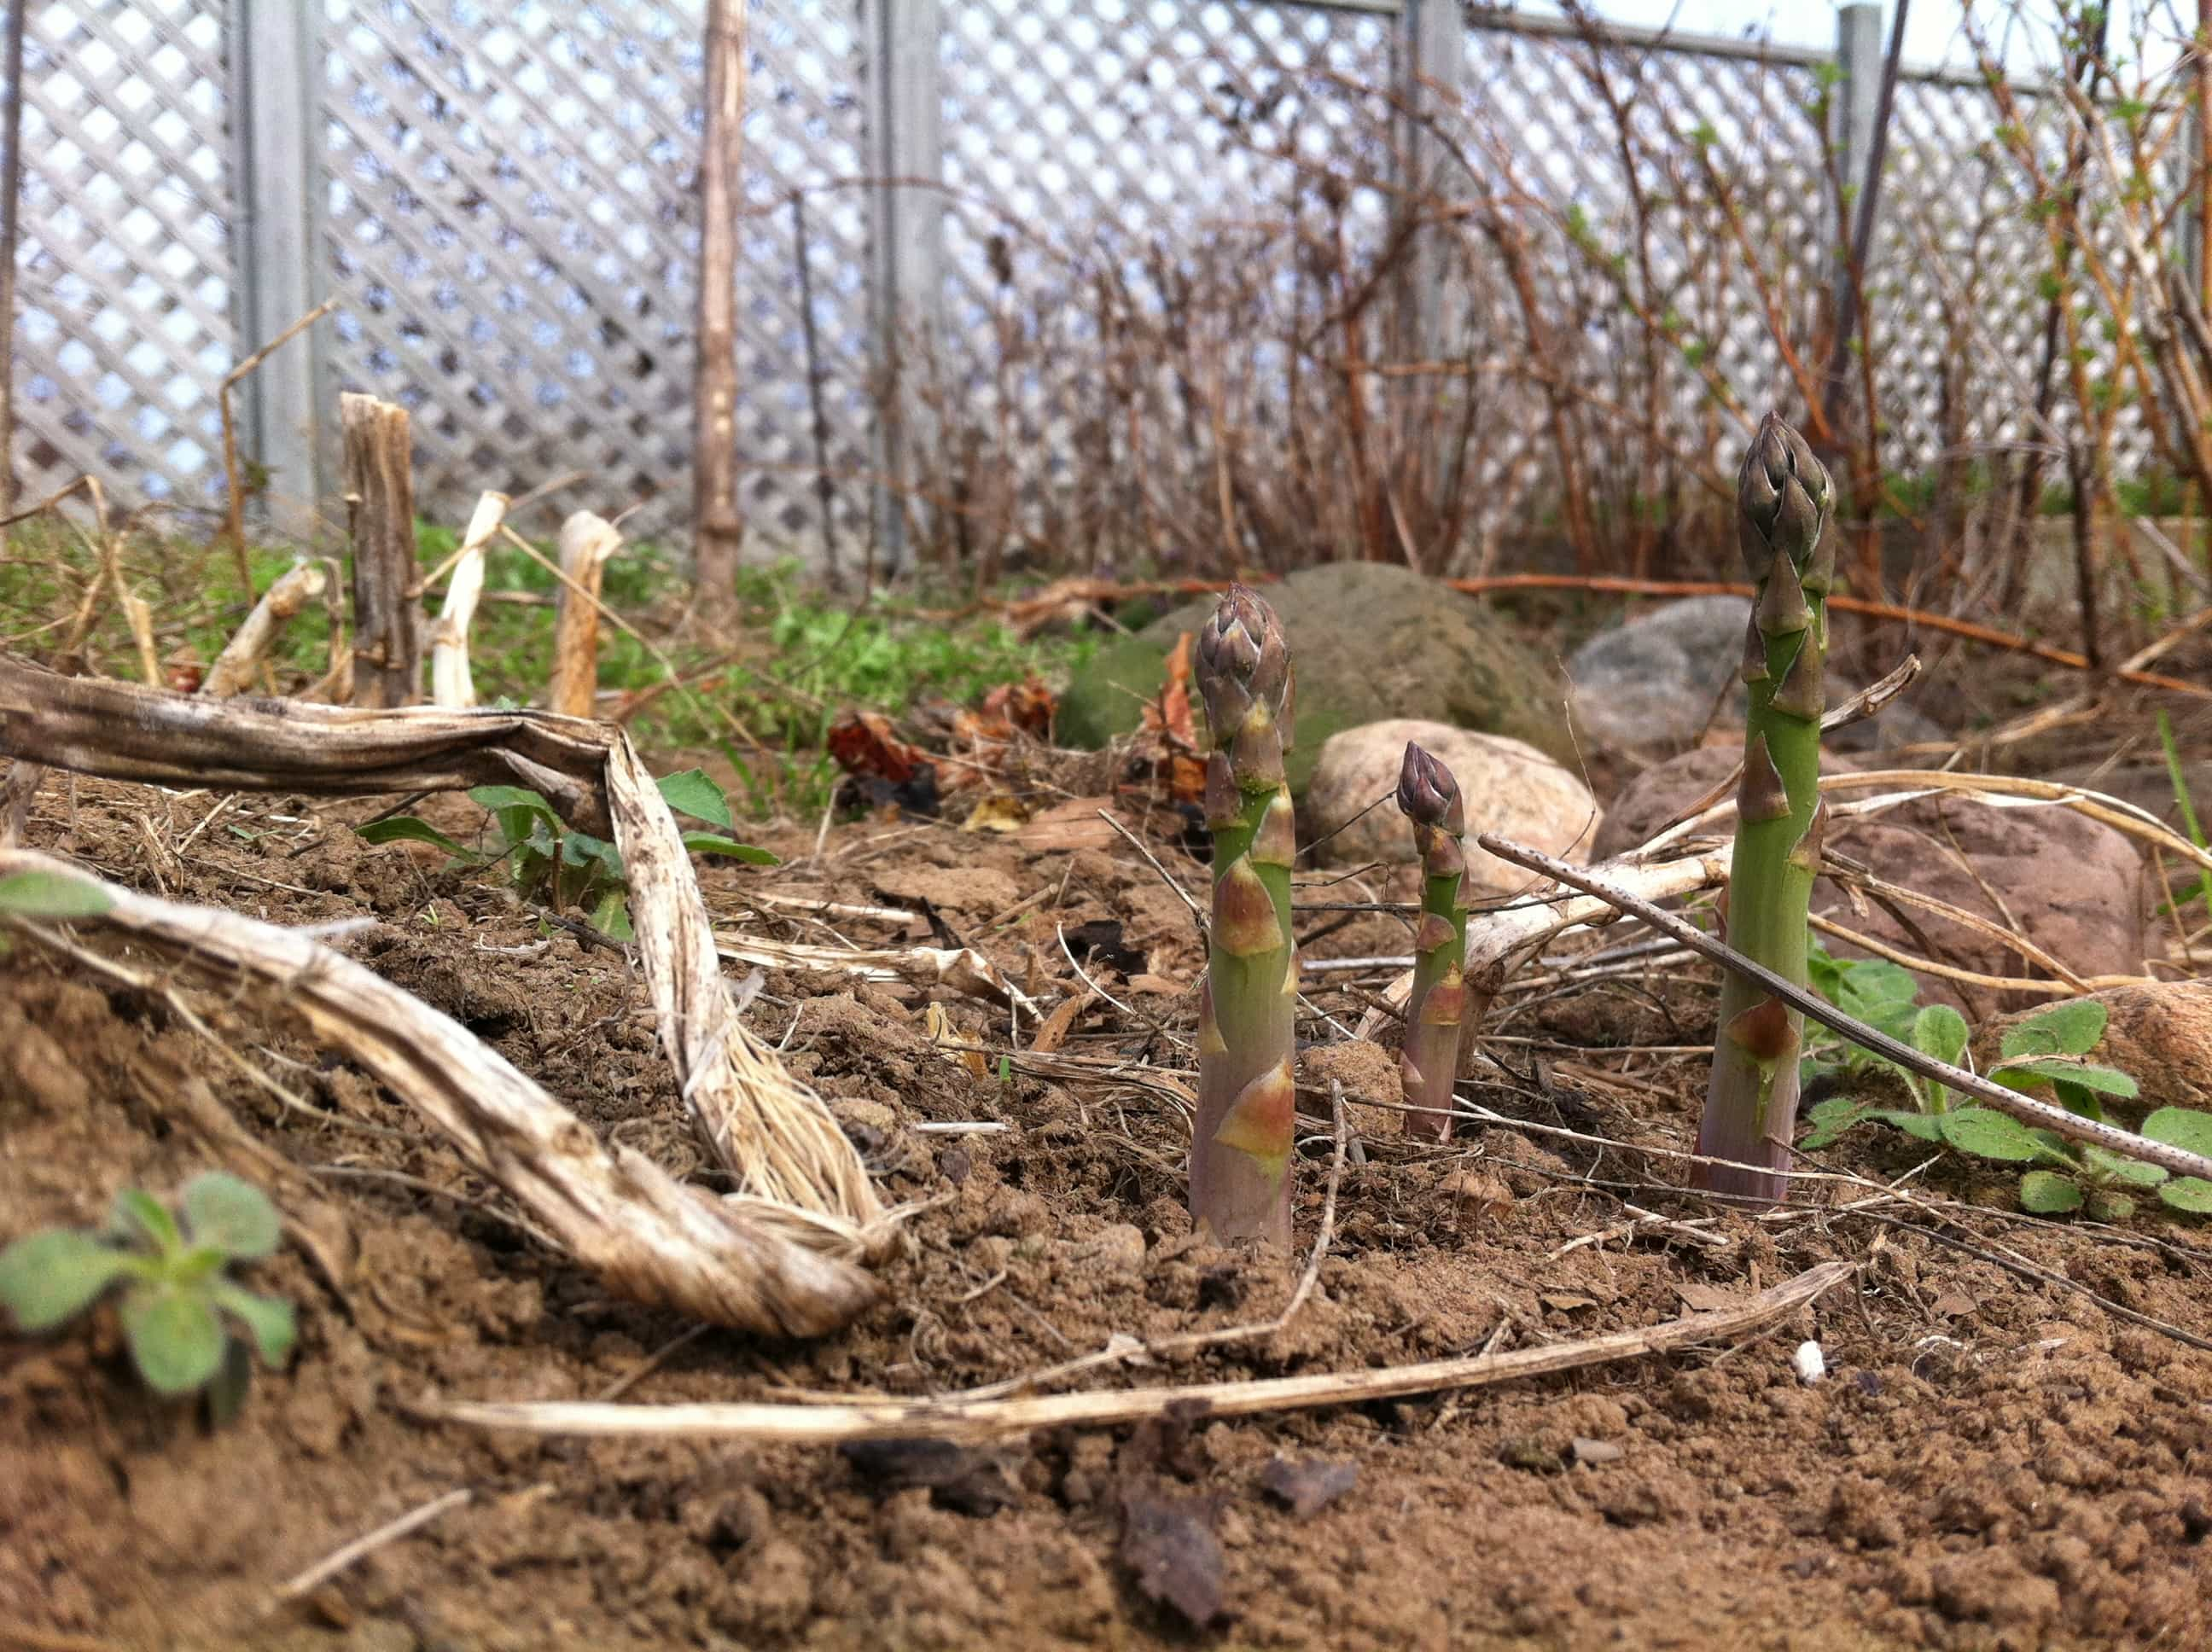 asparagus in March?